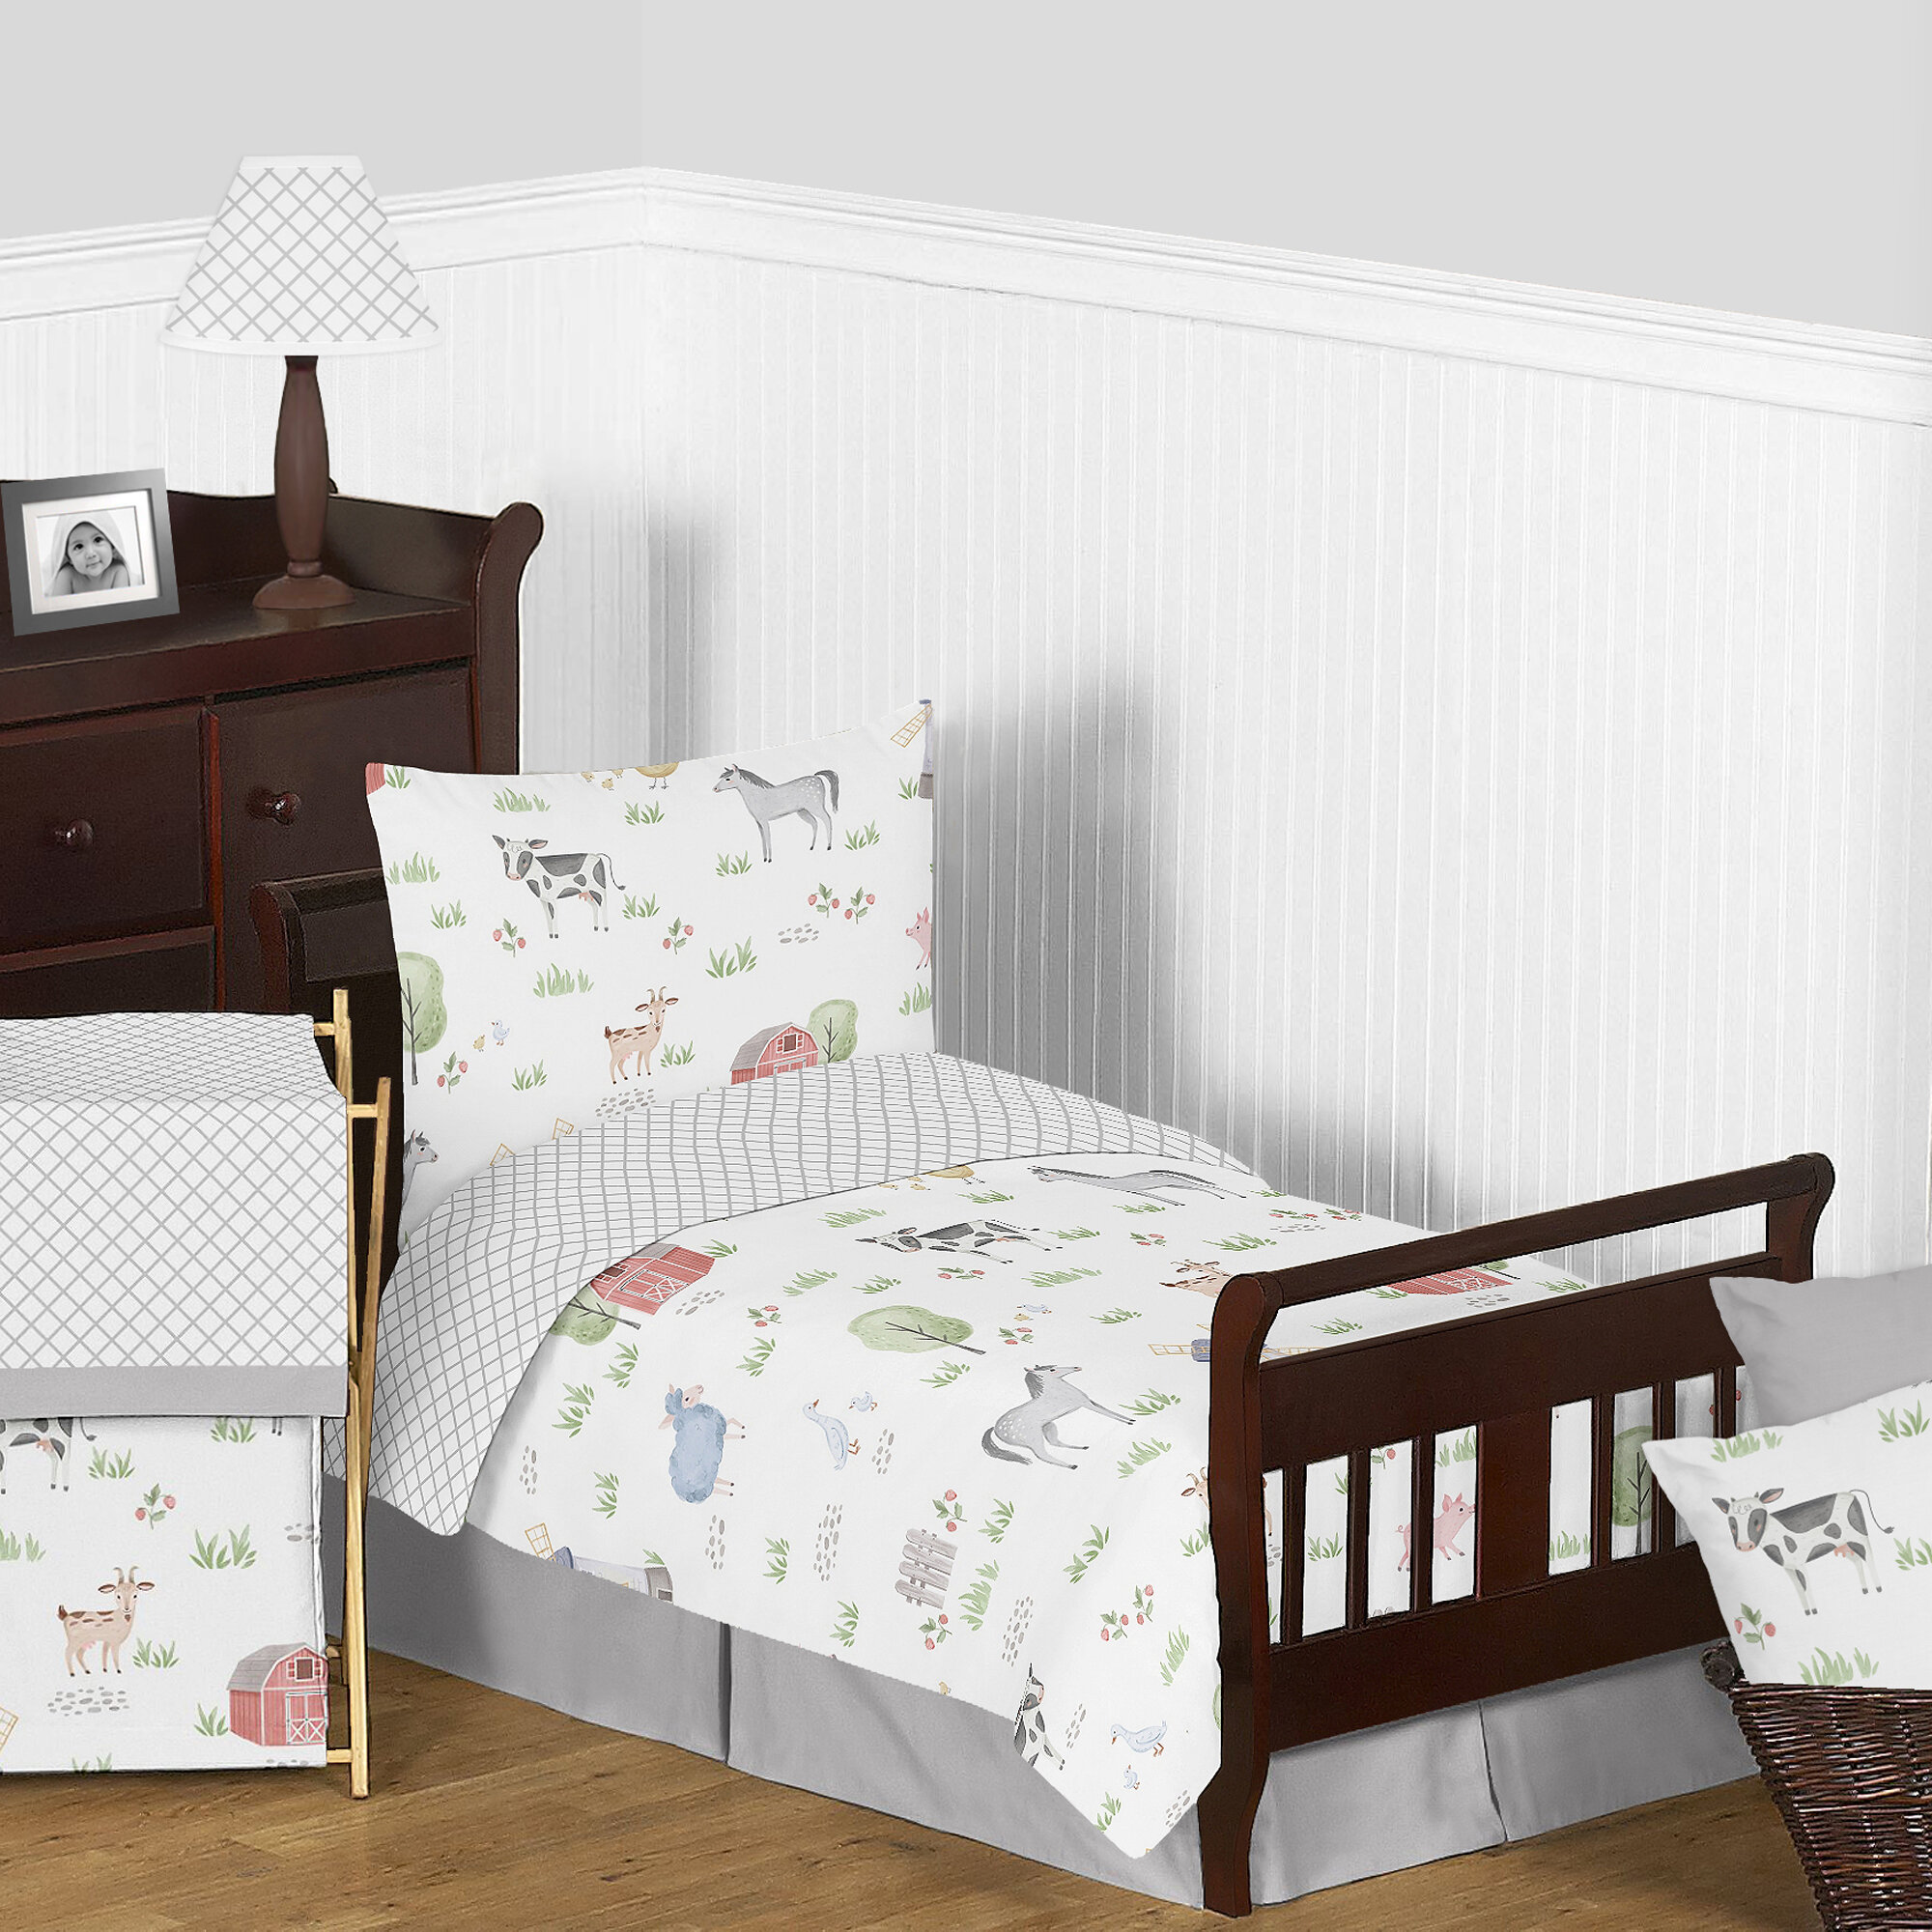 Toddler Bedding You Ll Love In 2021 Wayfair Ca